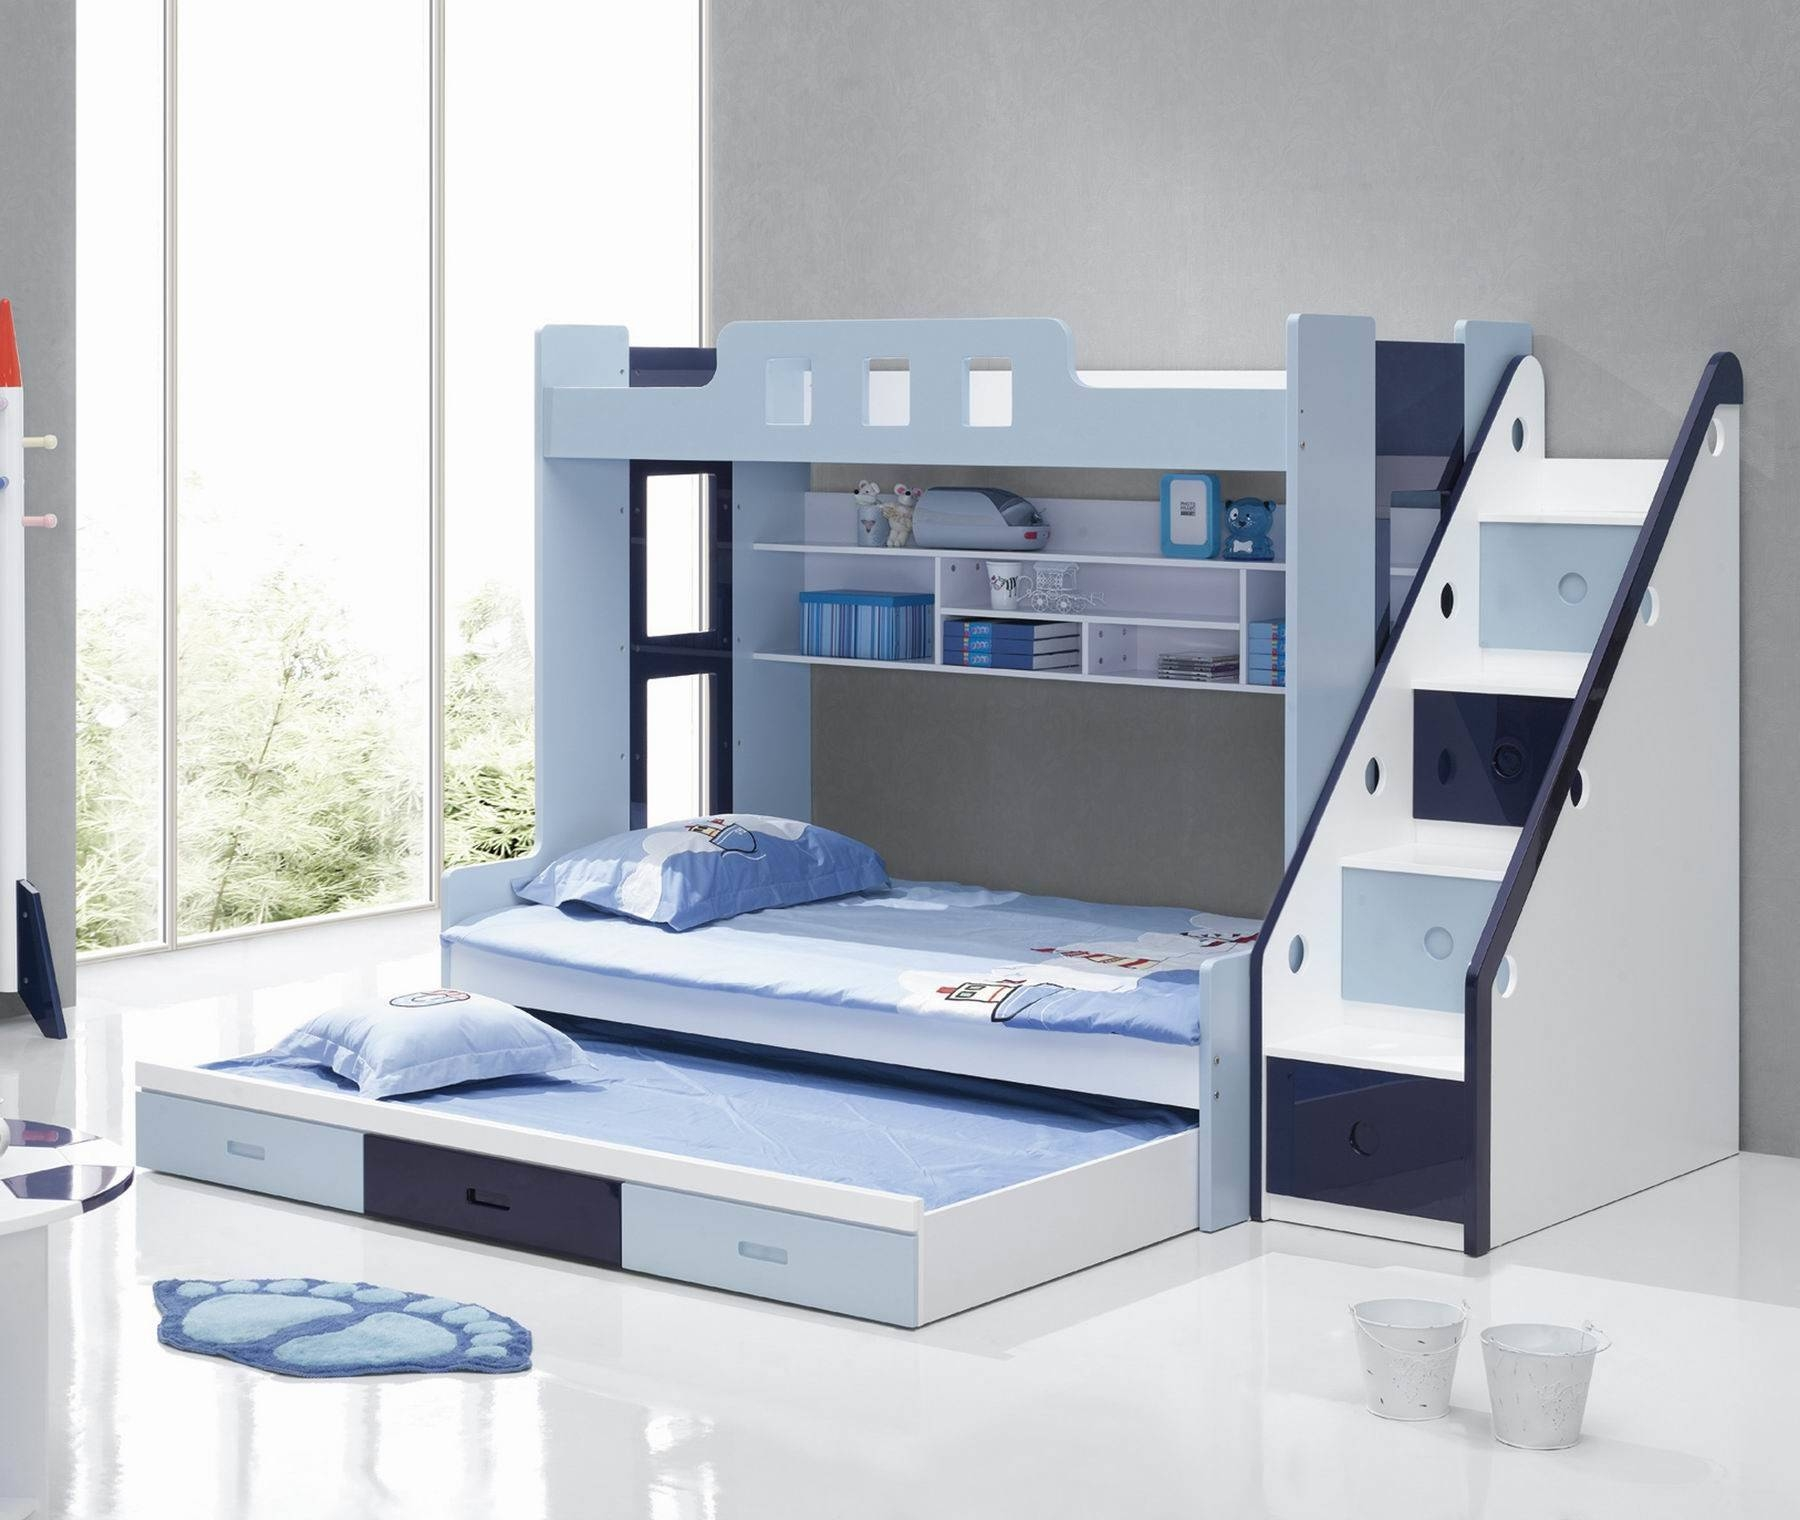 modern bunk beds for sale ideas on foter rh foter com